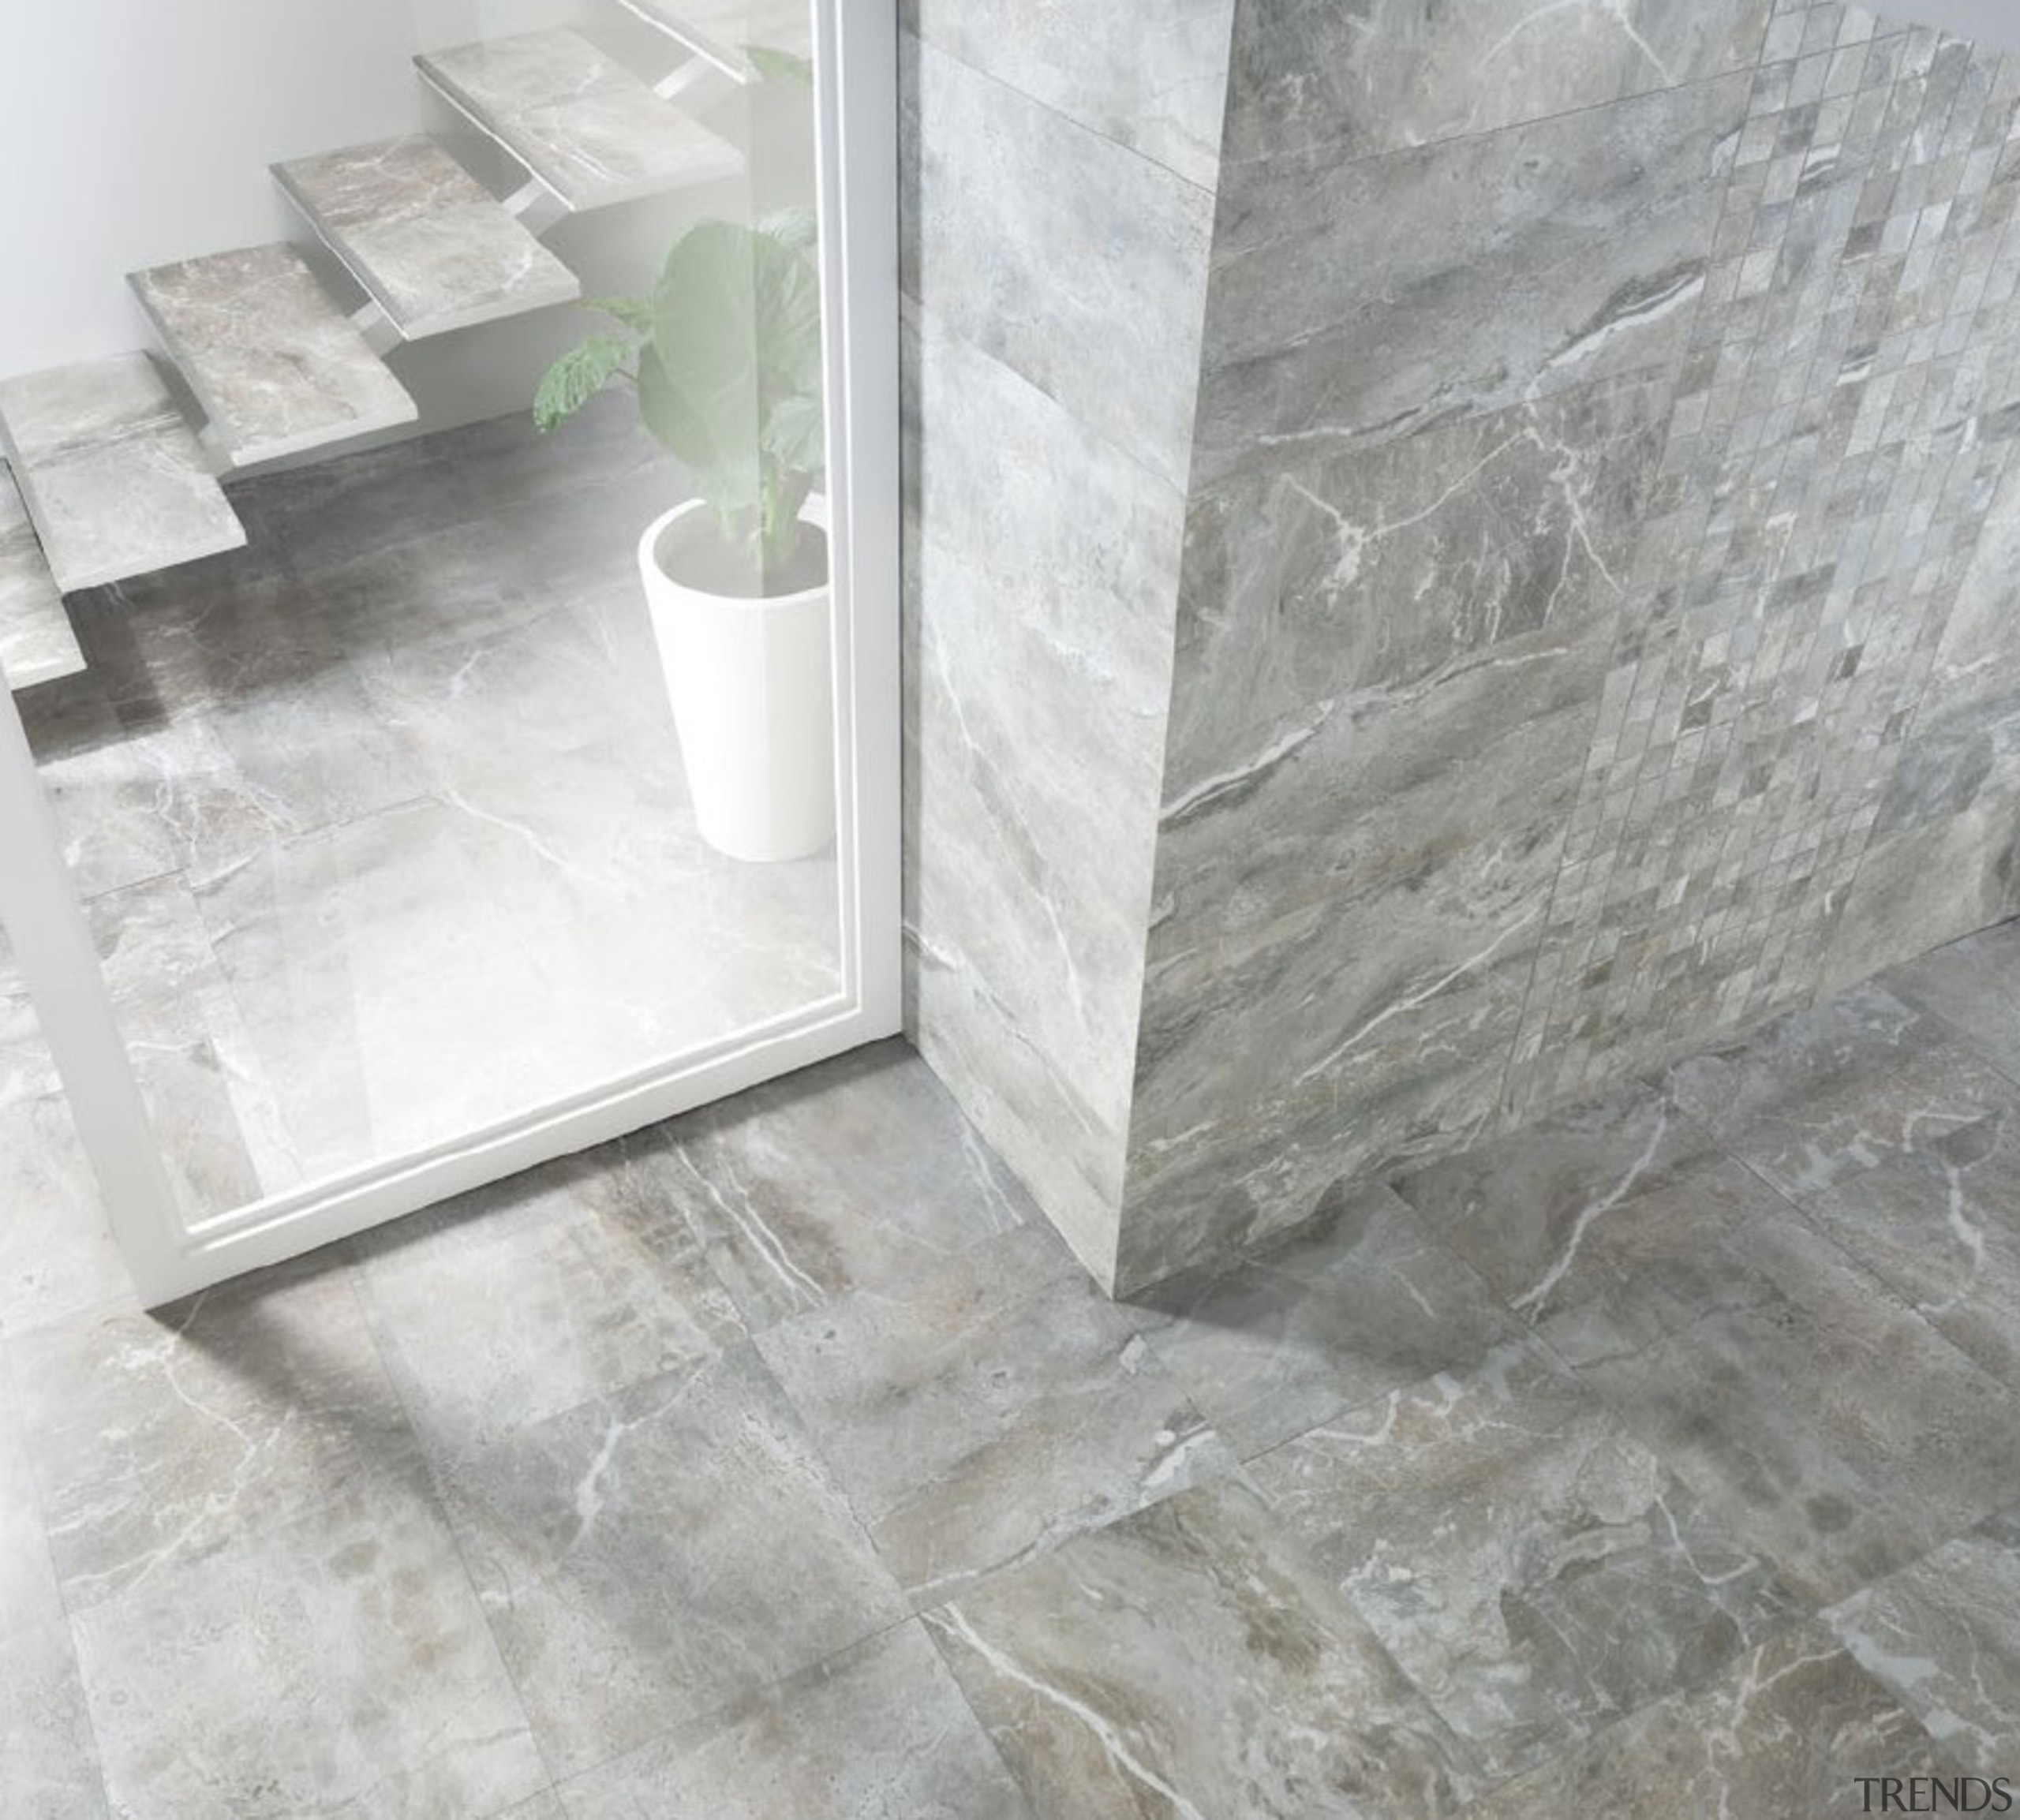 Frost thrill tile la fabbrica floor tiles - floor, flooring, tile, wall, gray